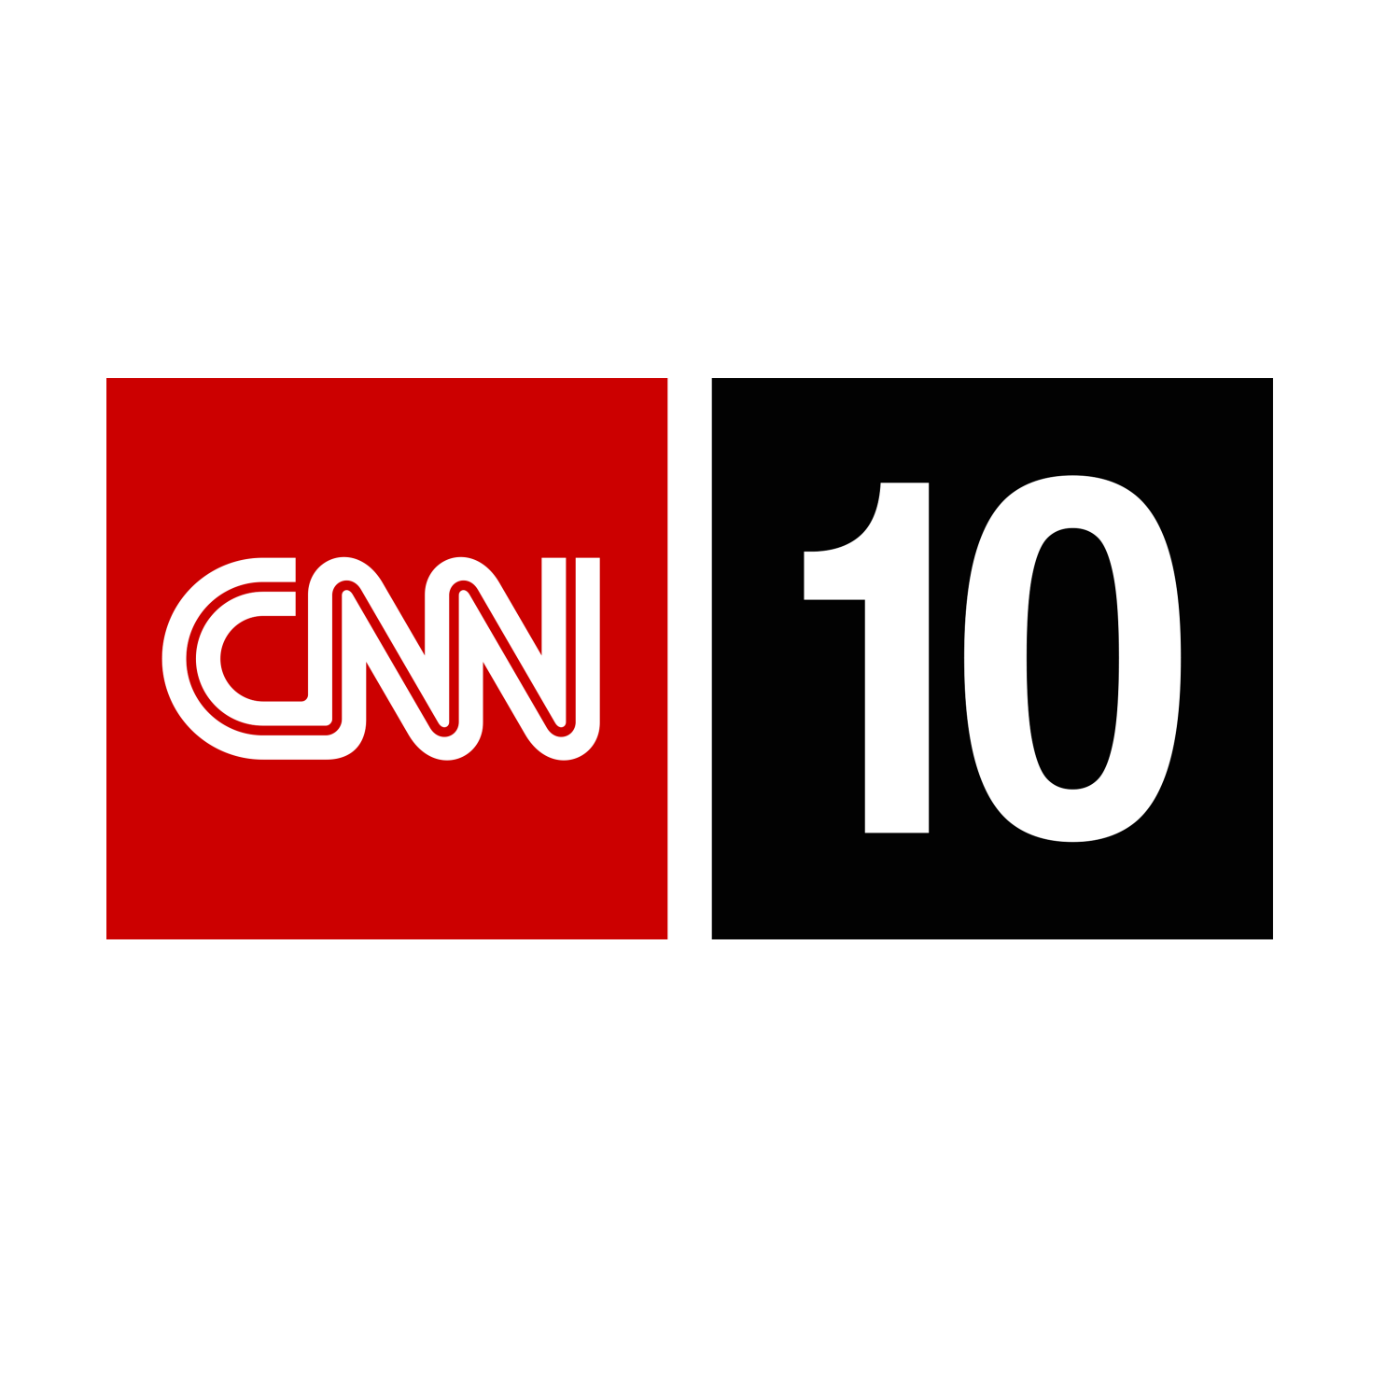 CNN Student News - January 17, 2013